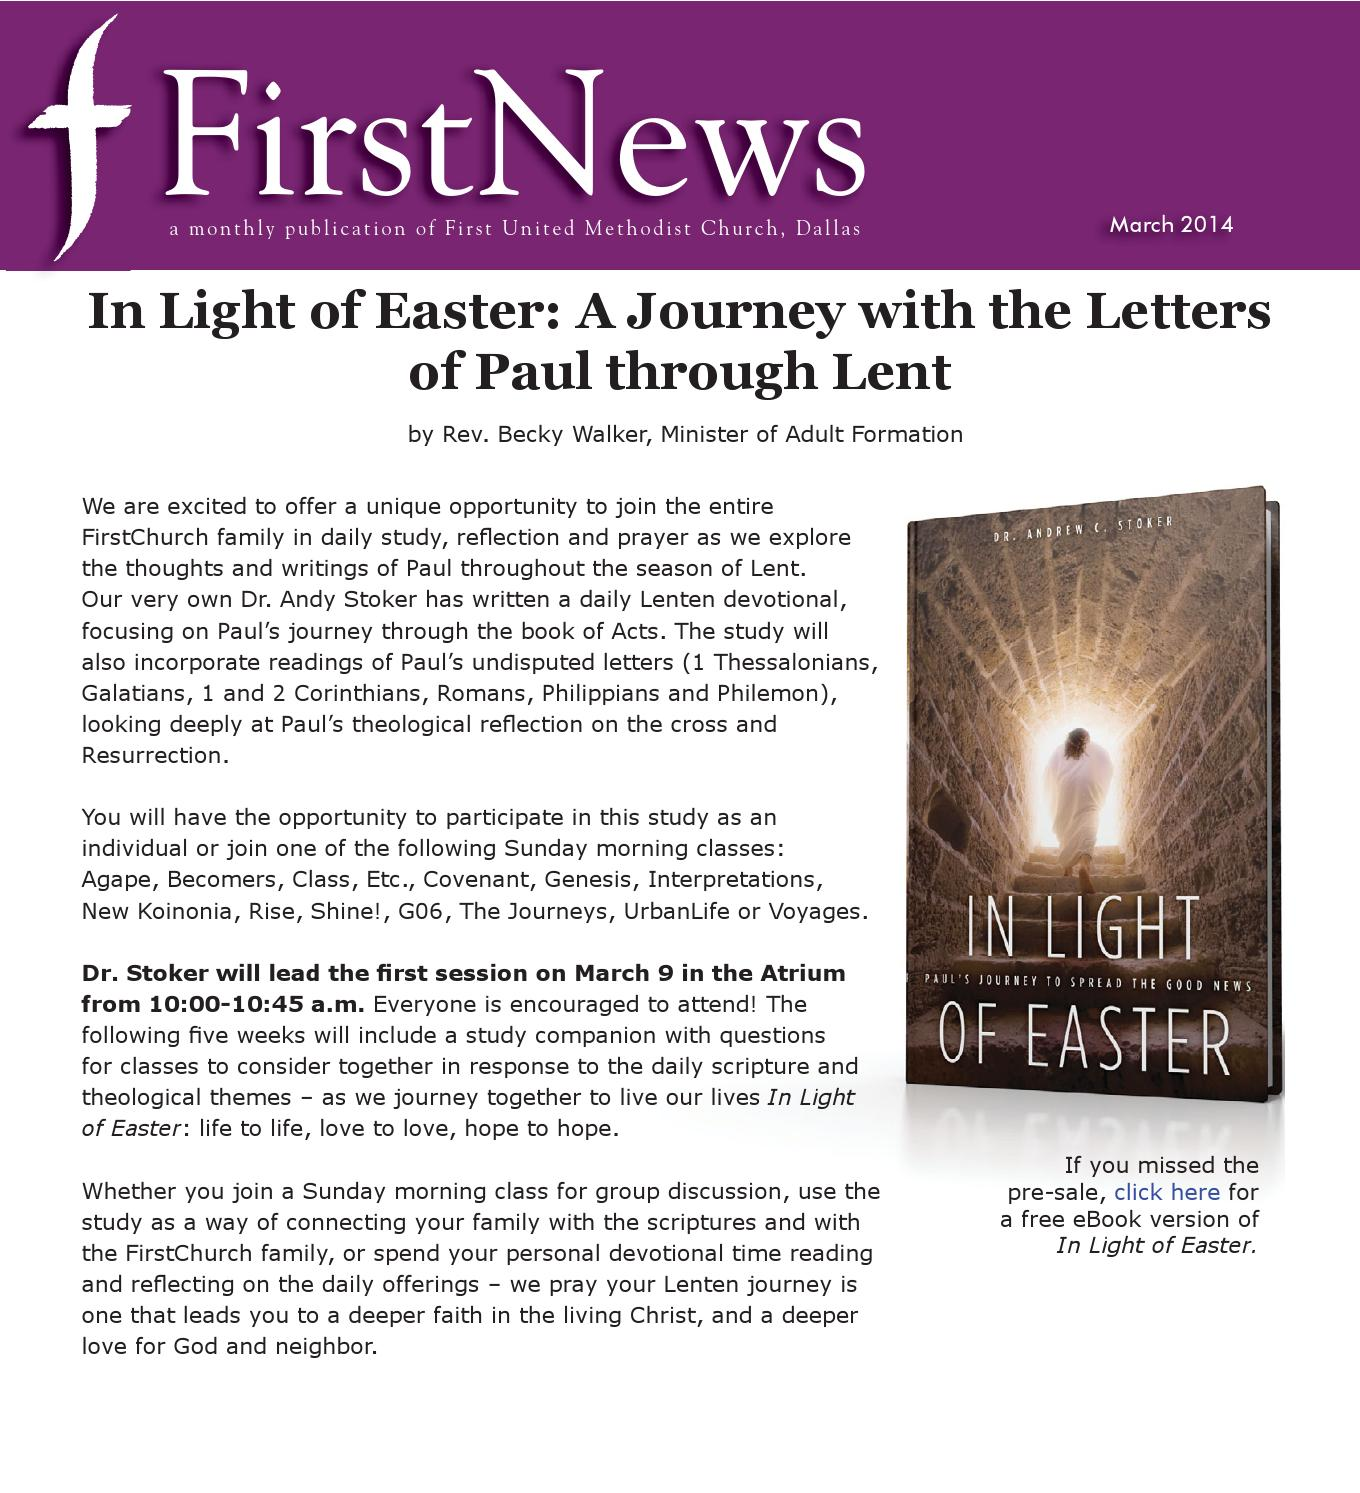 Mar14firstnews by first united methodist church of dallas issuu fandeluxe Images